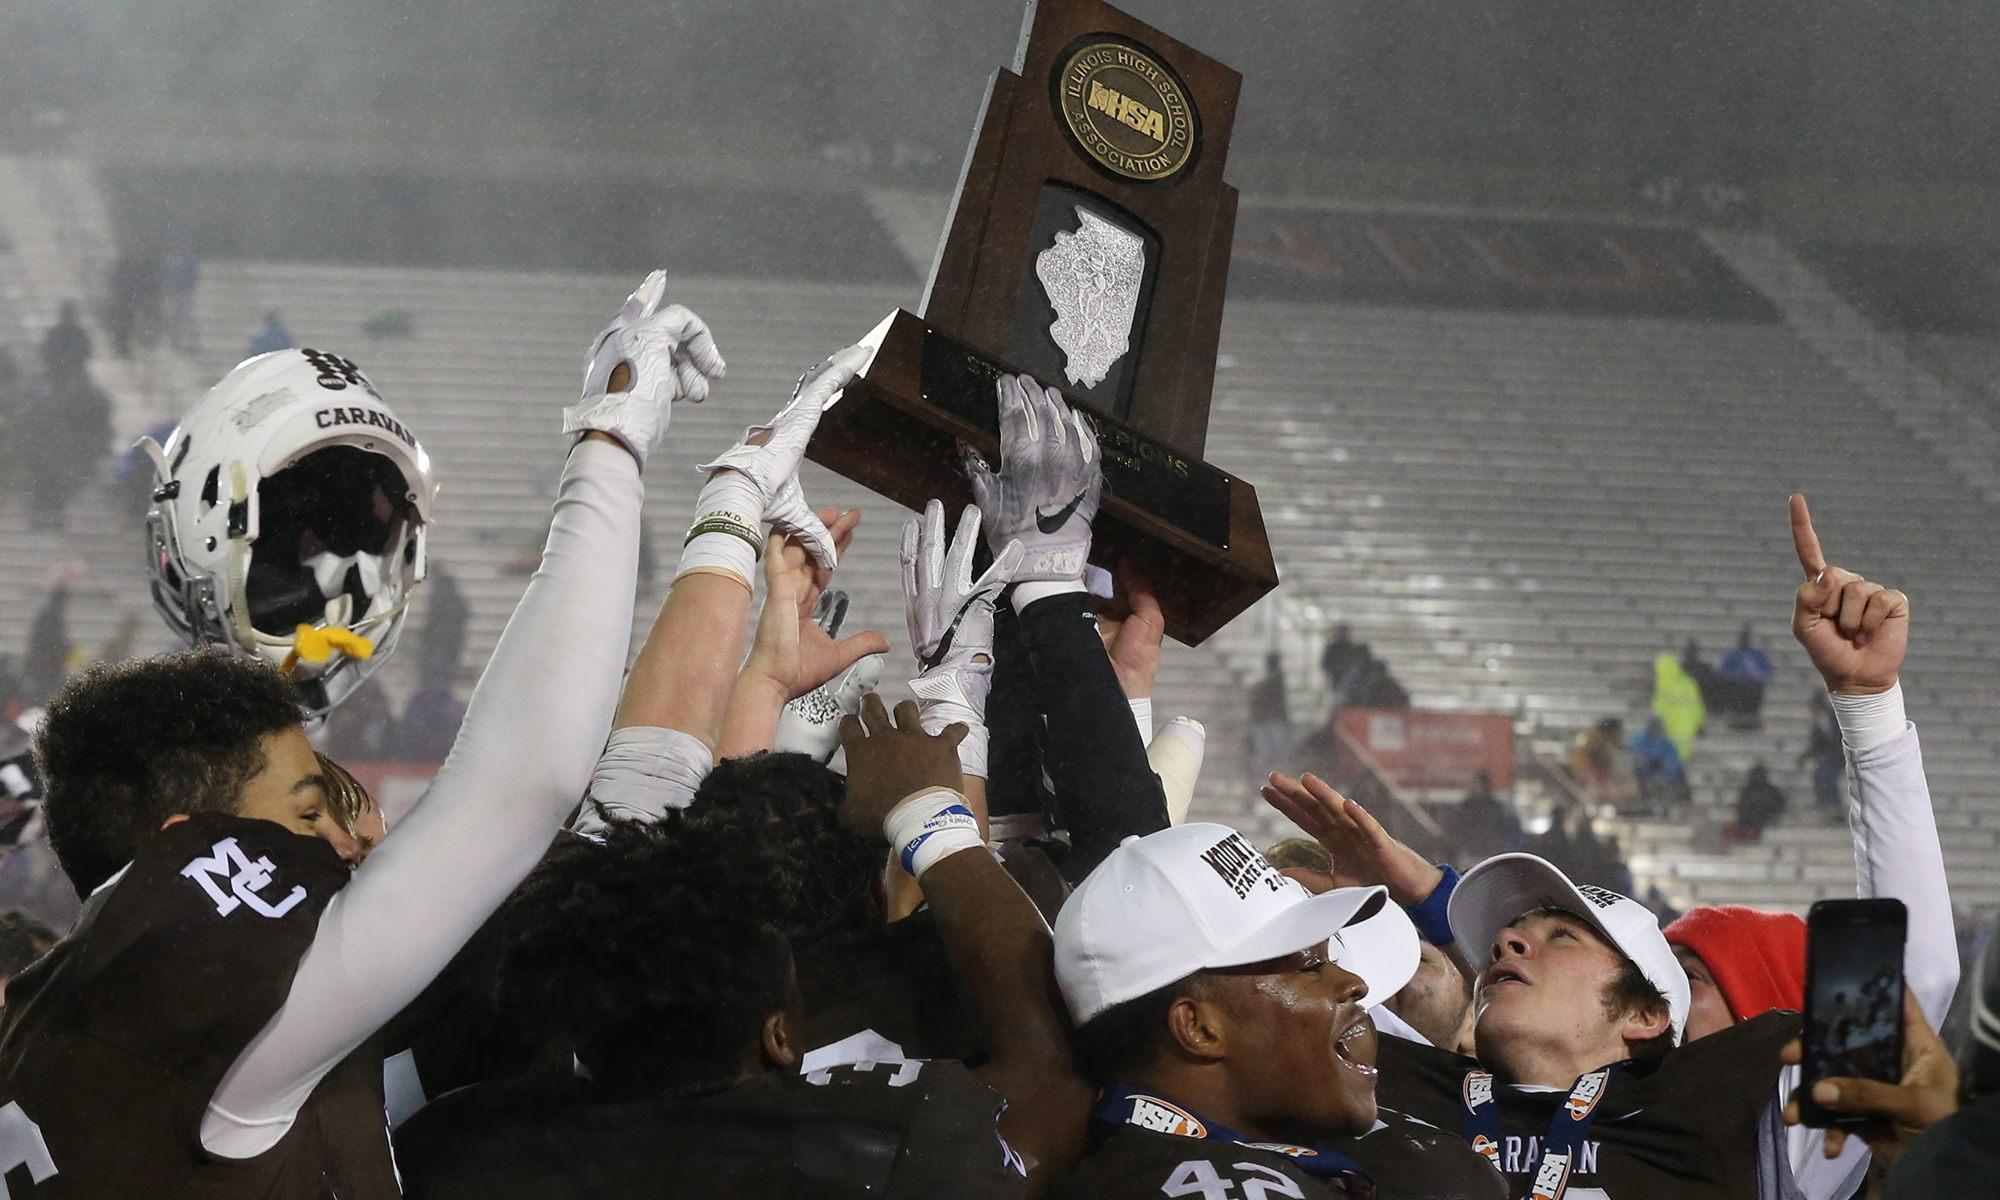 Mount Carmel's players celebrate their Class 7A State championship win over Nazareth in 2019.